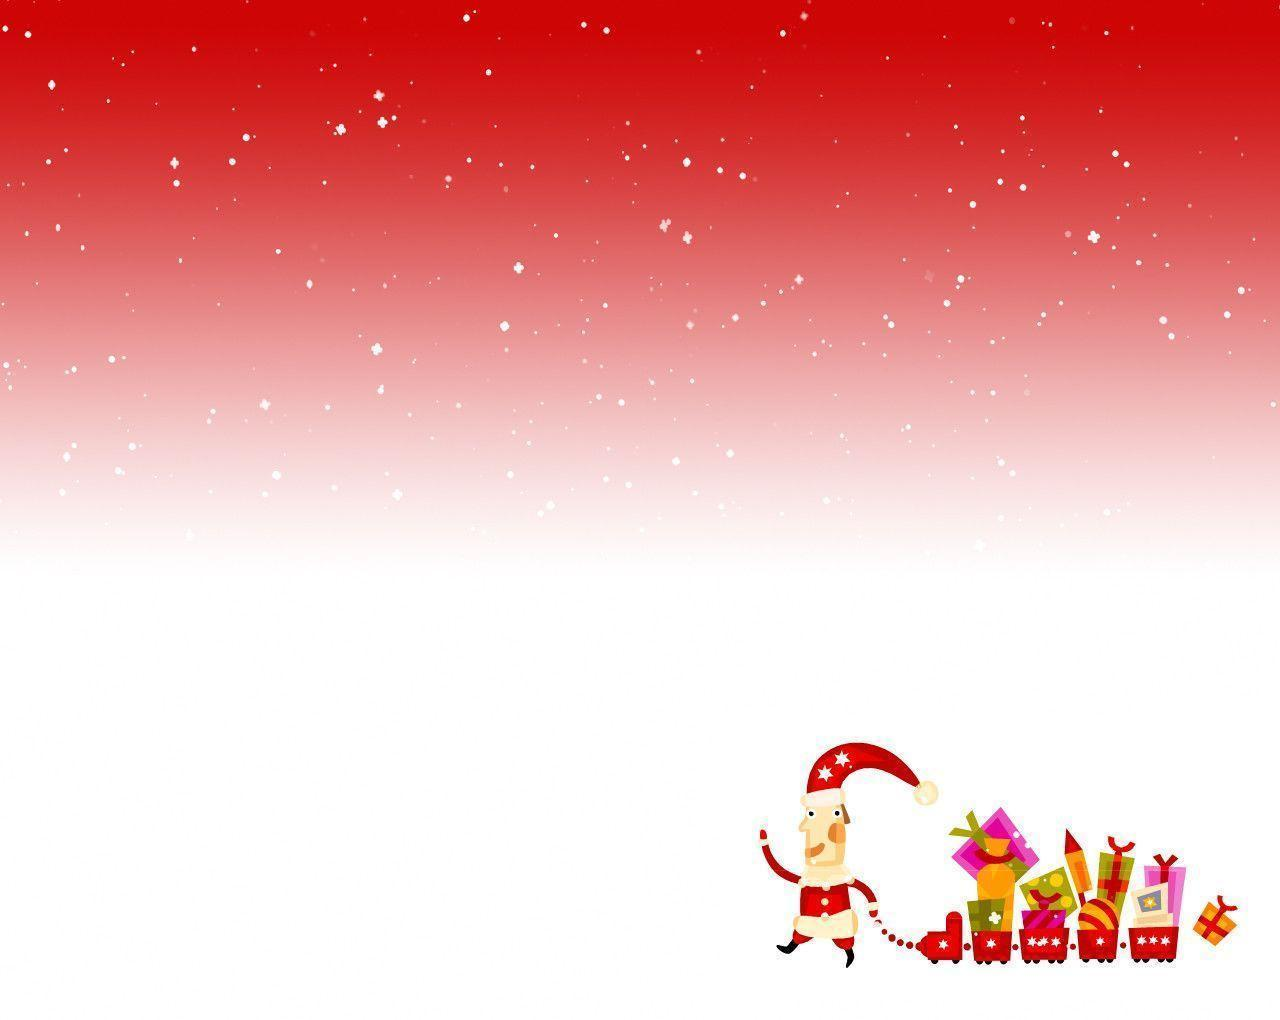 cute holiday backgrounds wallpaper - photo #5